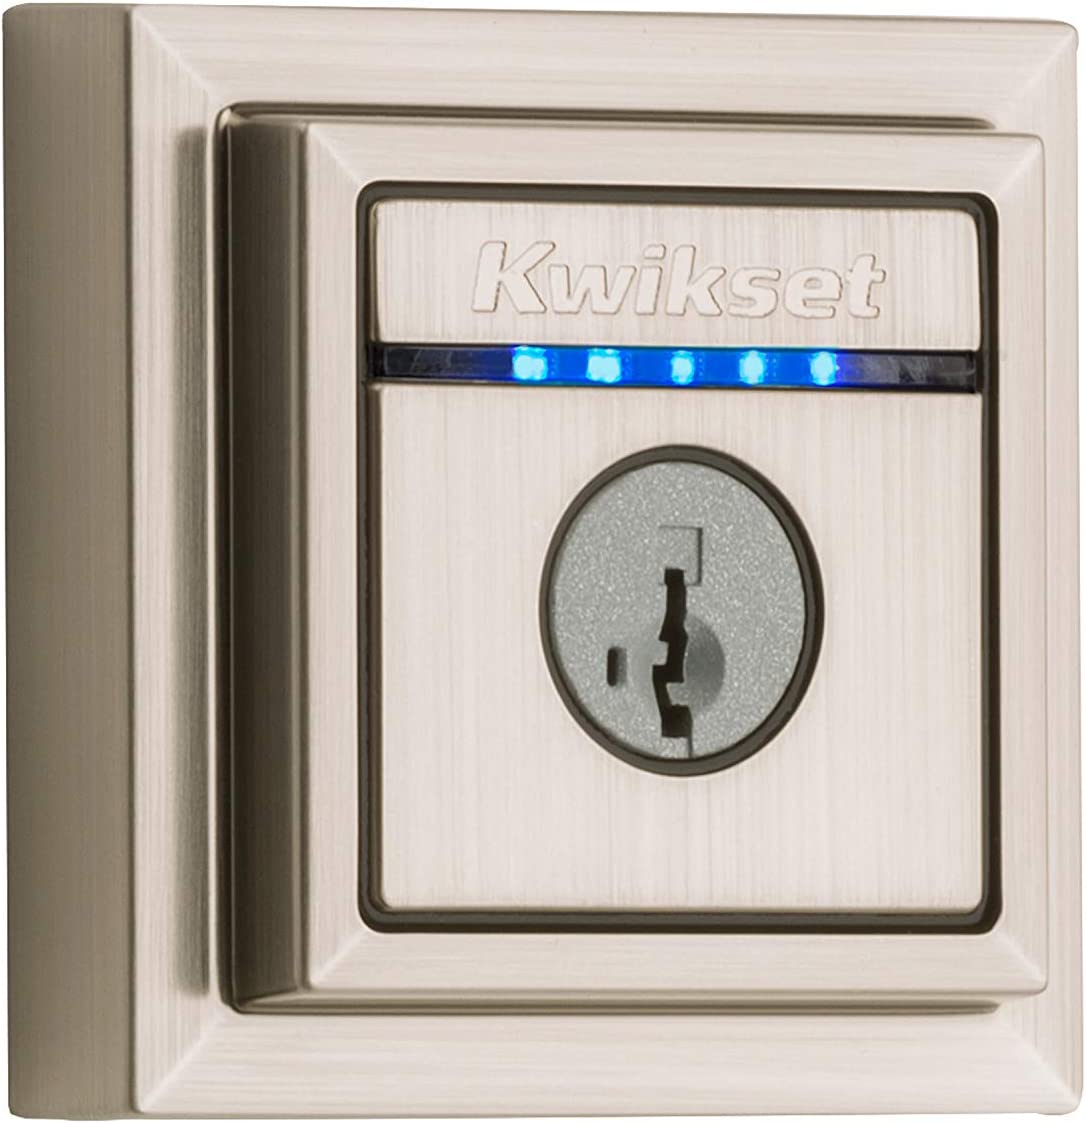 Kwikset 99250-206 Kevo Contemporary Touch-to-Open Bluetooth Smart Square Door Lock Deadbolt Featuring SmartKey Security, Satin Nickel